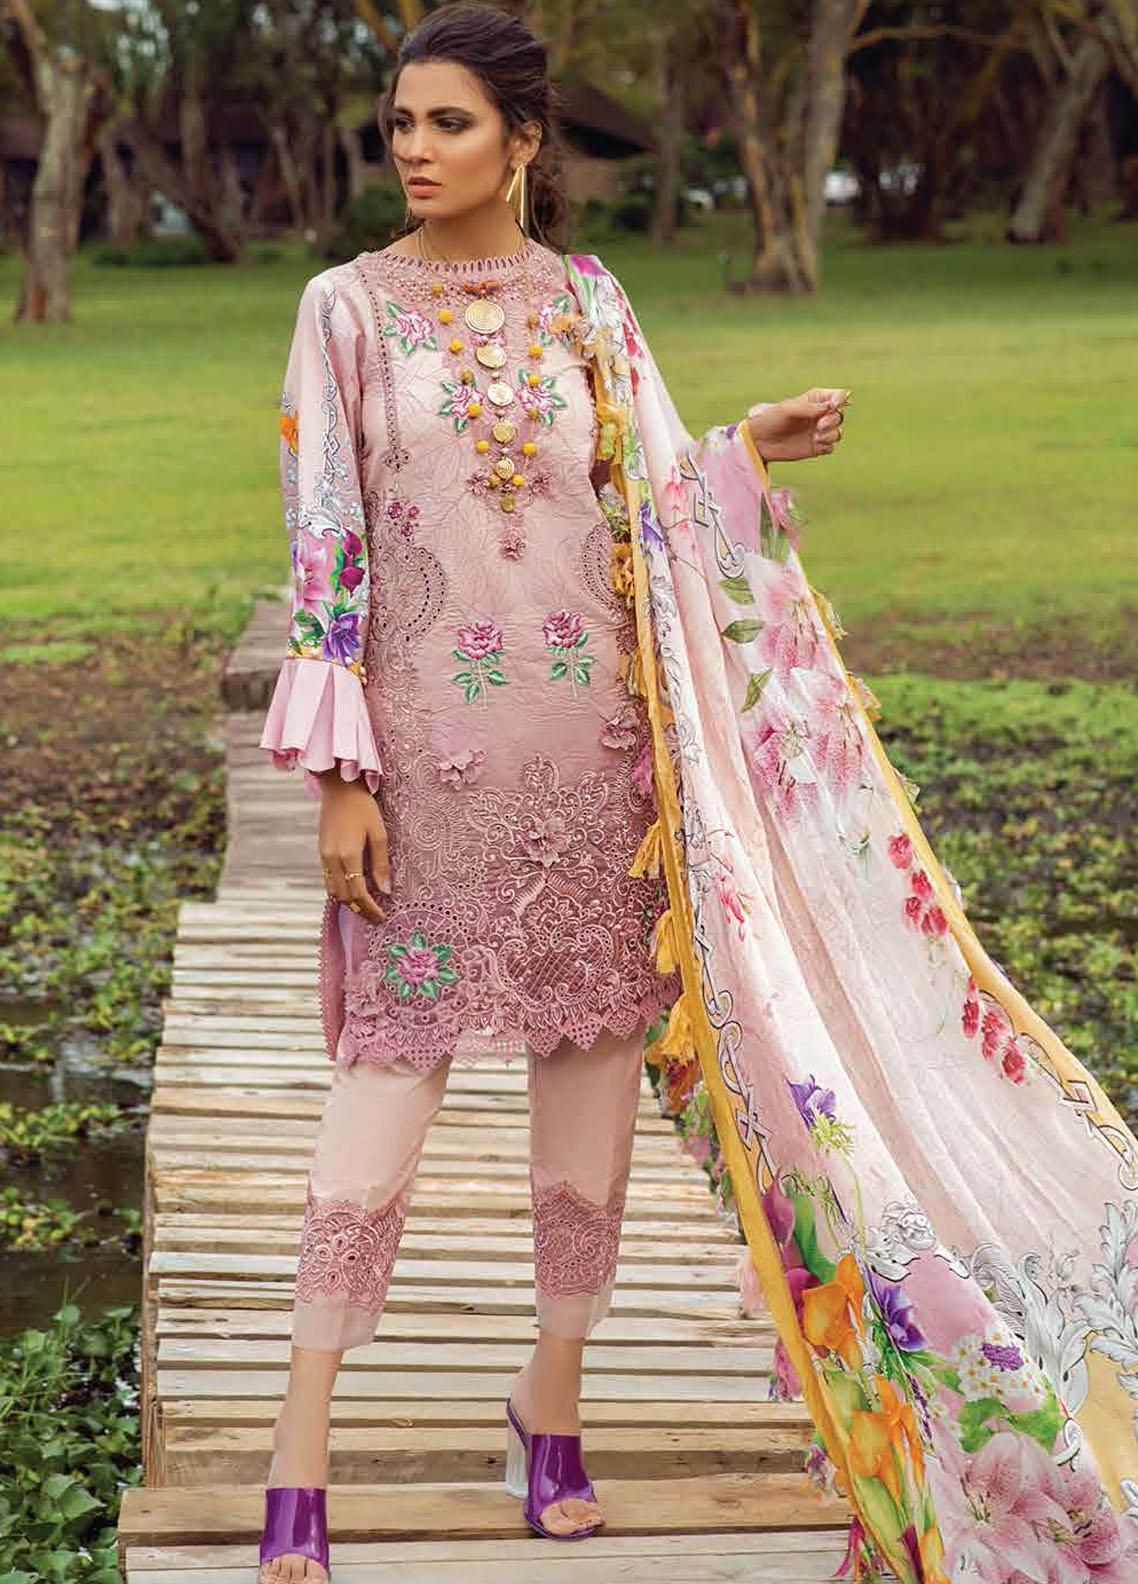 Hemline By Mushq Embroidered Chikankari Suits Unstitched 3 Piece MQ21H 04 Blissful Happiness - Spring / Summer Collection